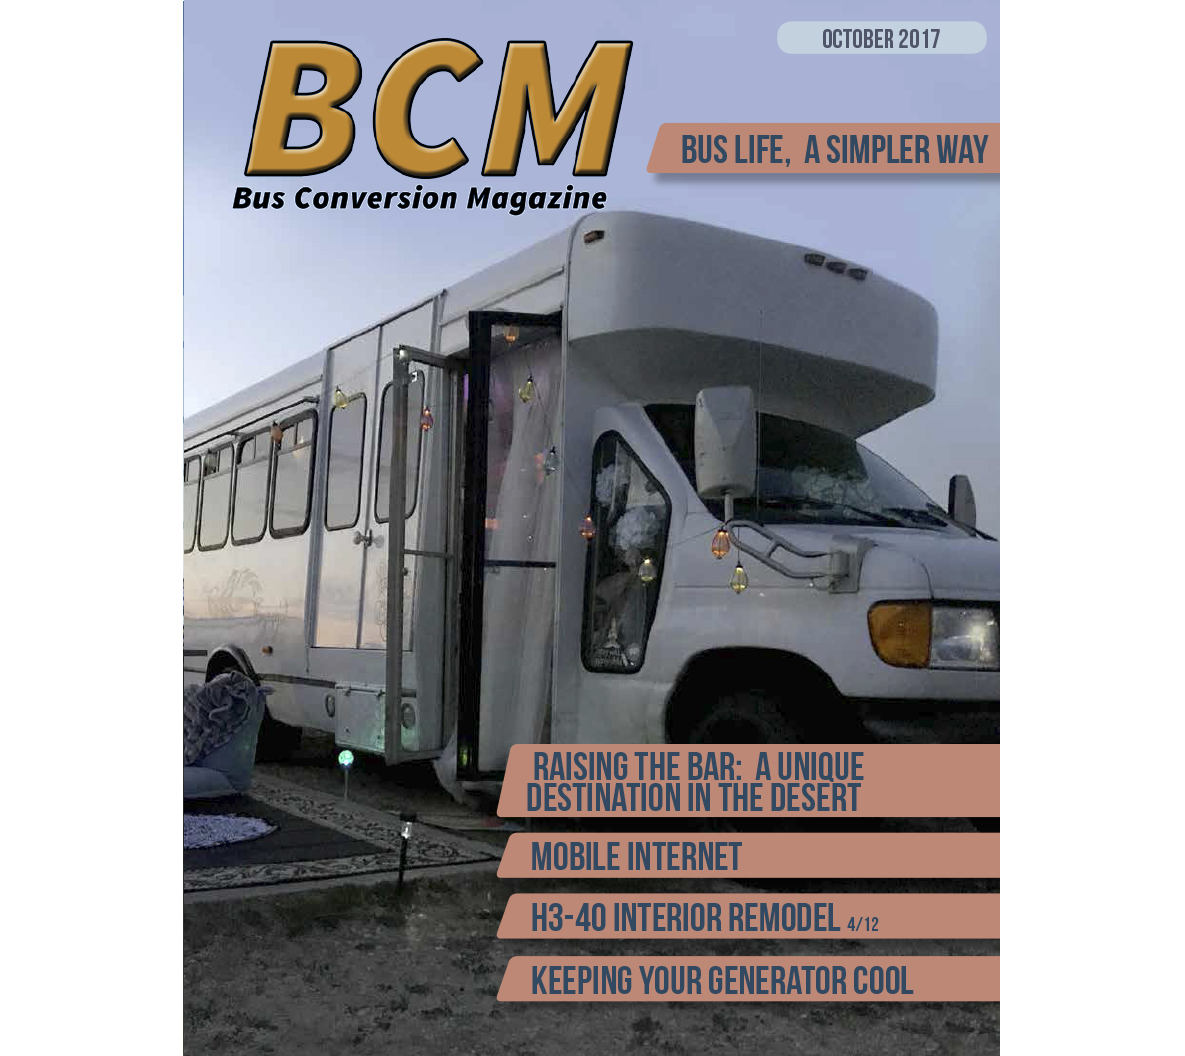 BCM201710_01_cover